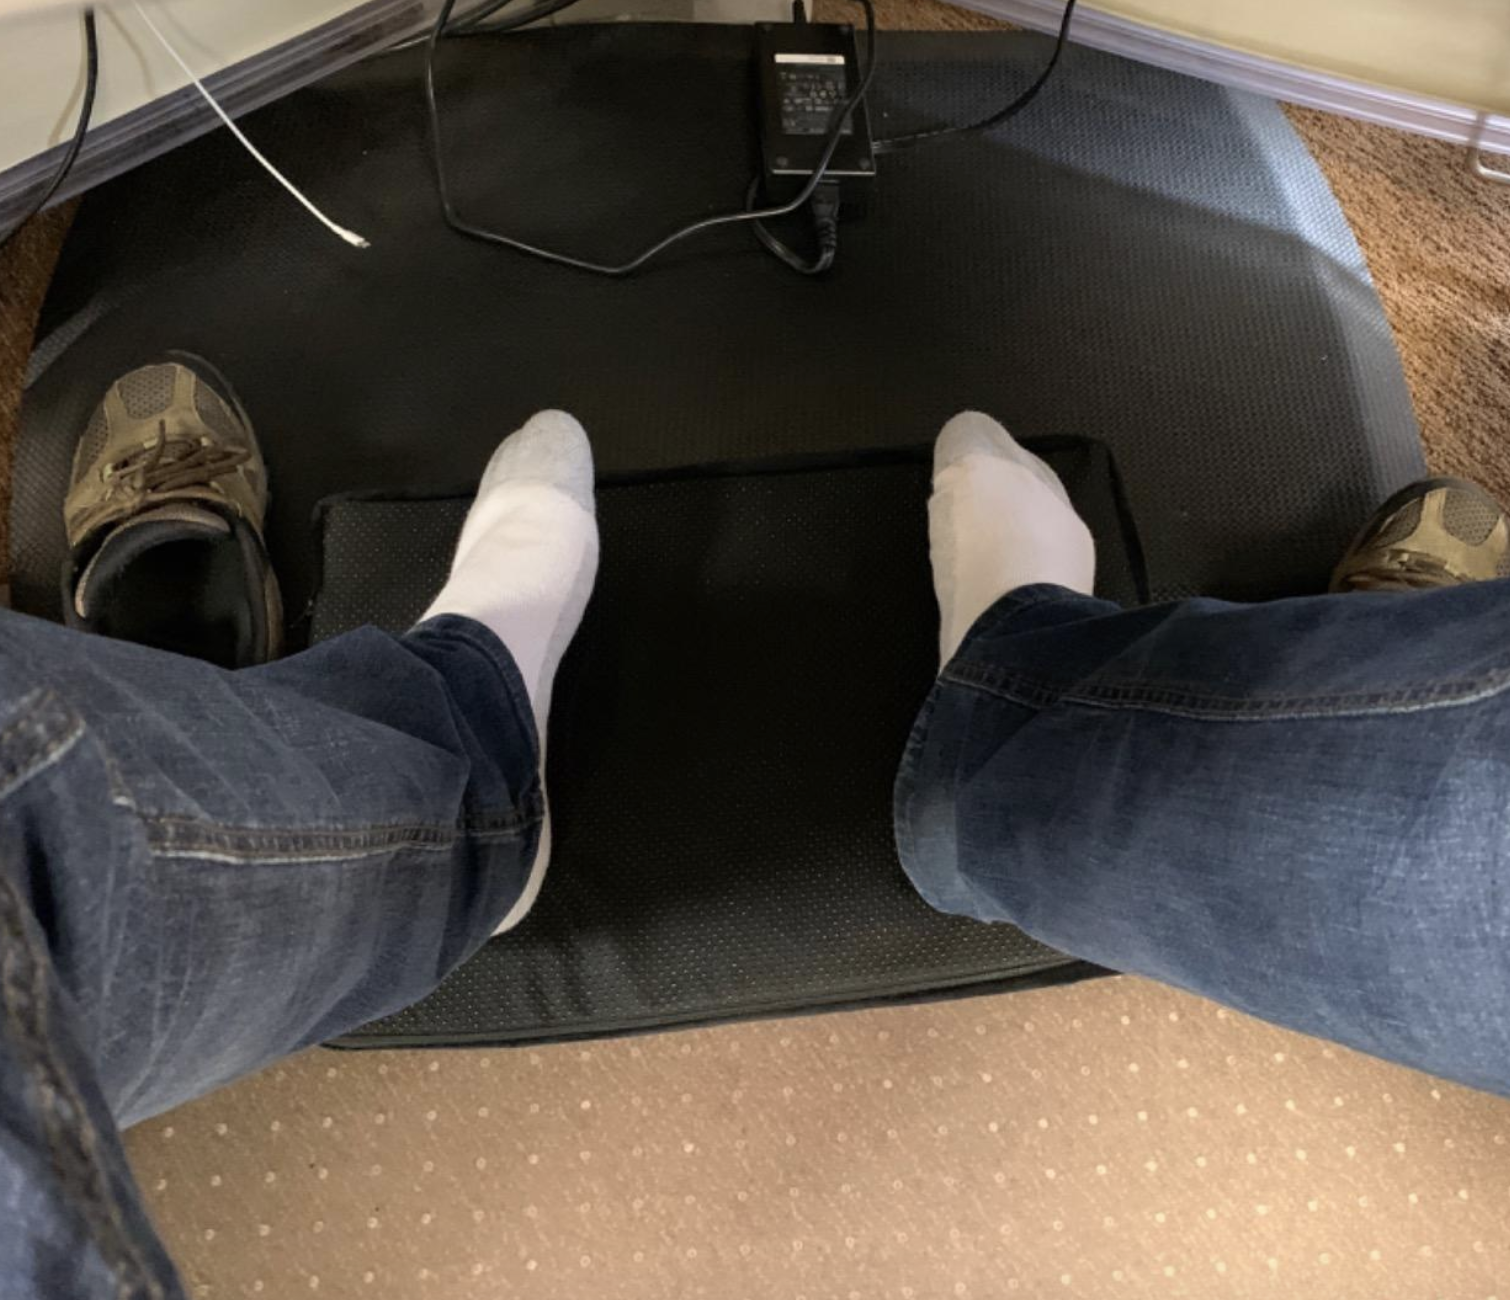 reviewer using black foot rest under desk